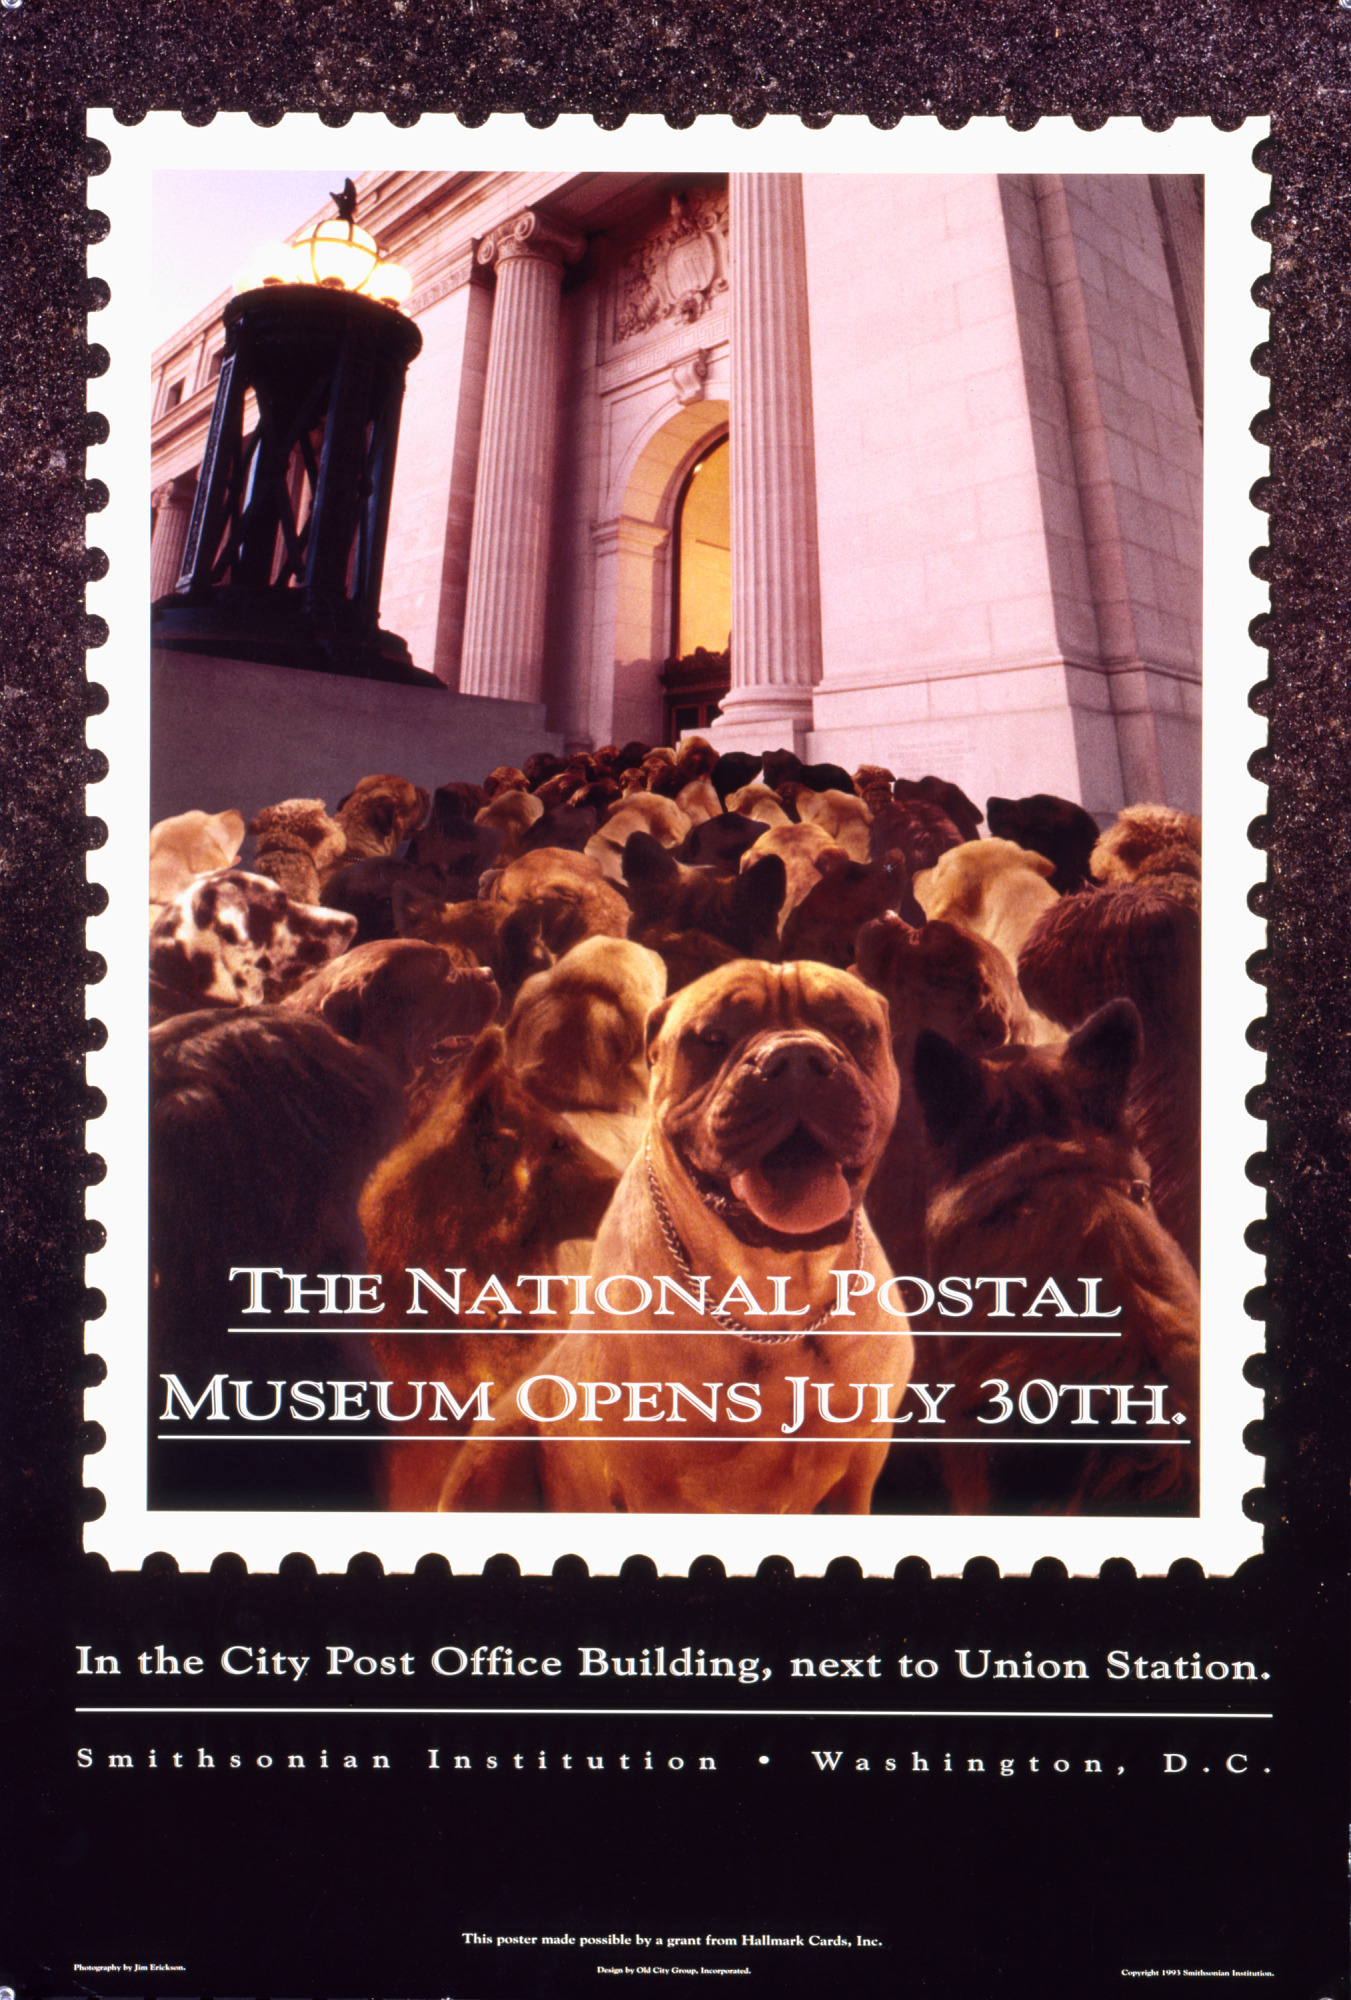 THE NATIONAL POSTAL MUSEUM OPENS JULY 30TH